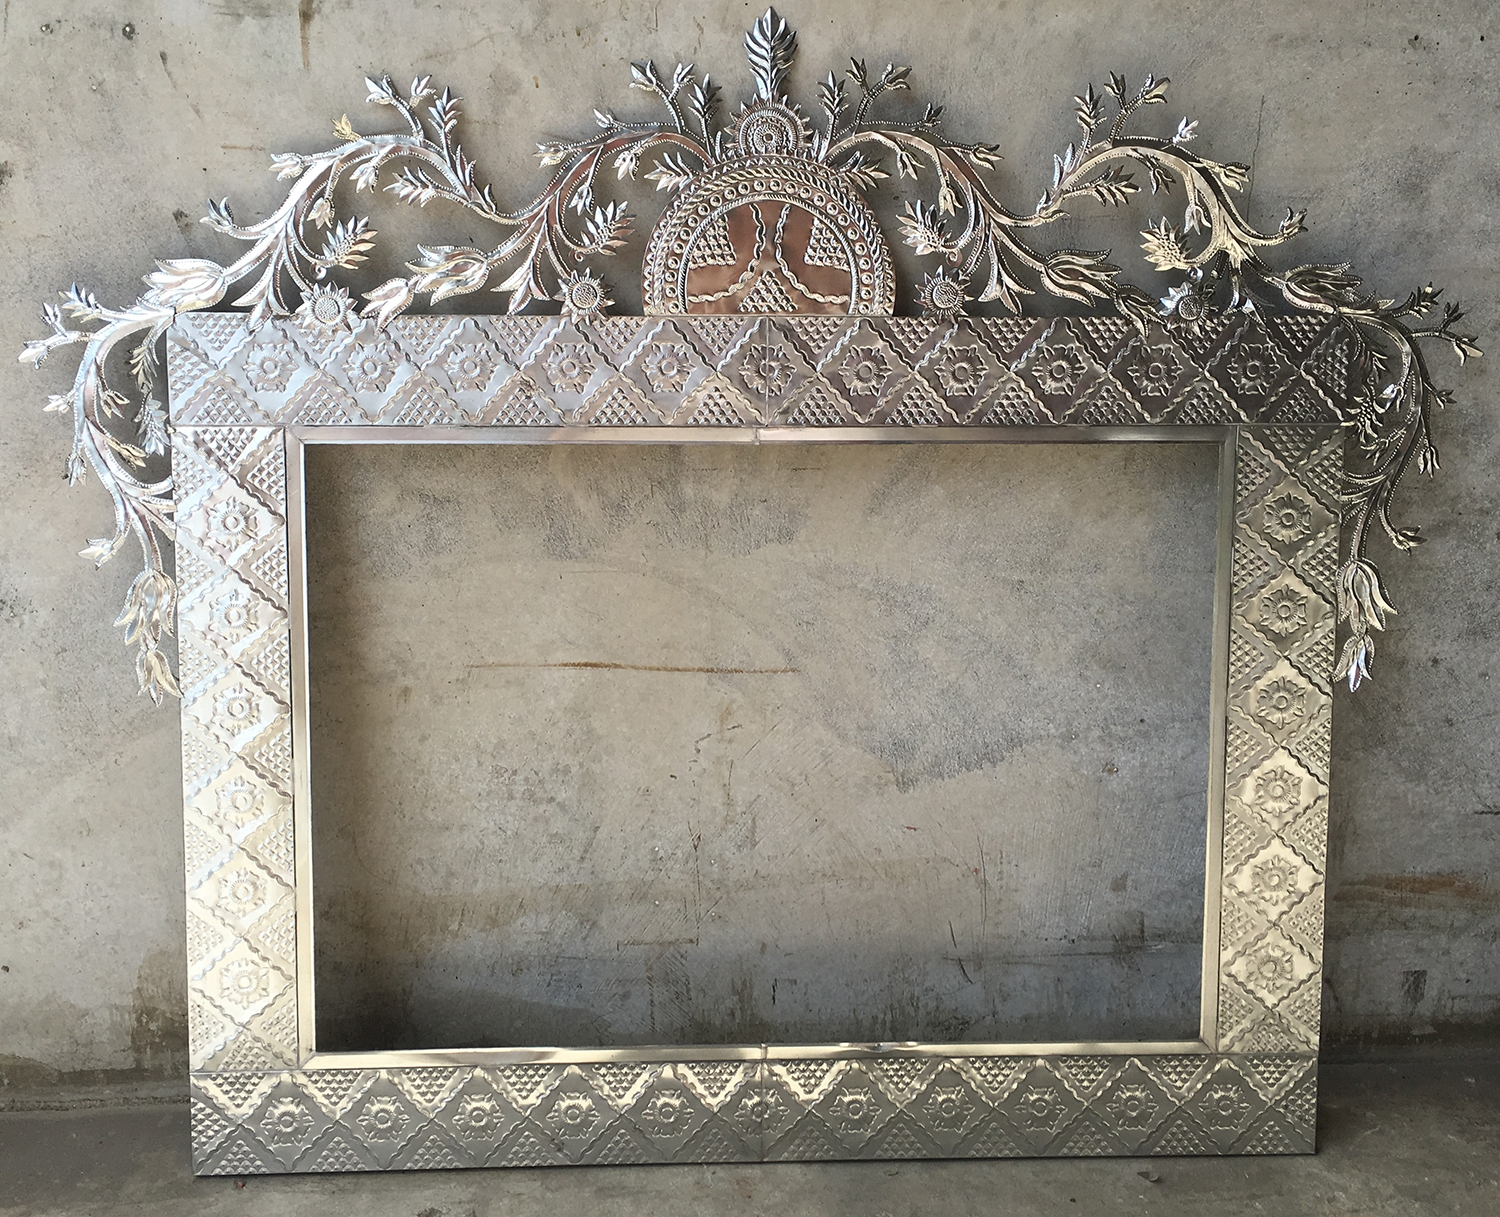 A Large Mexican Pressed Tin Mirror Frame Only 160 W X 130cm H Within Pressed Tin Mirror (Image 3 of 15)